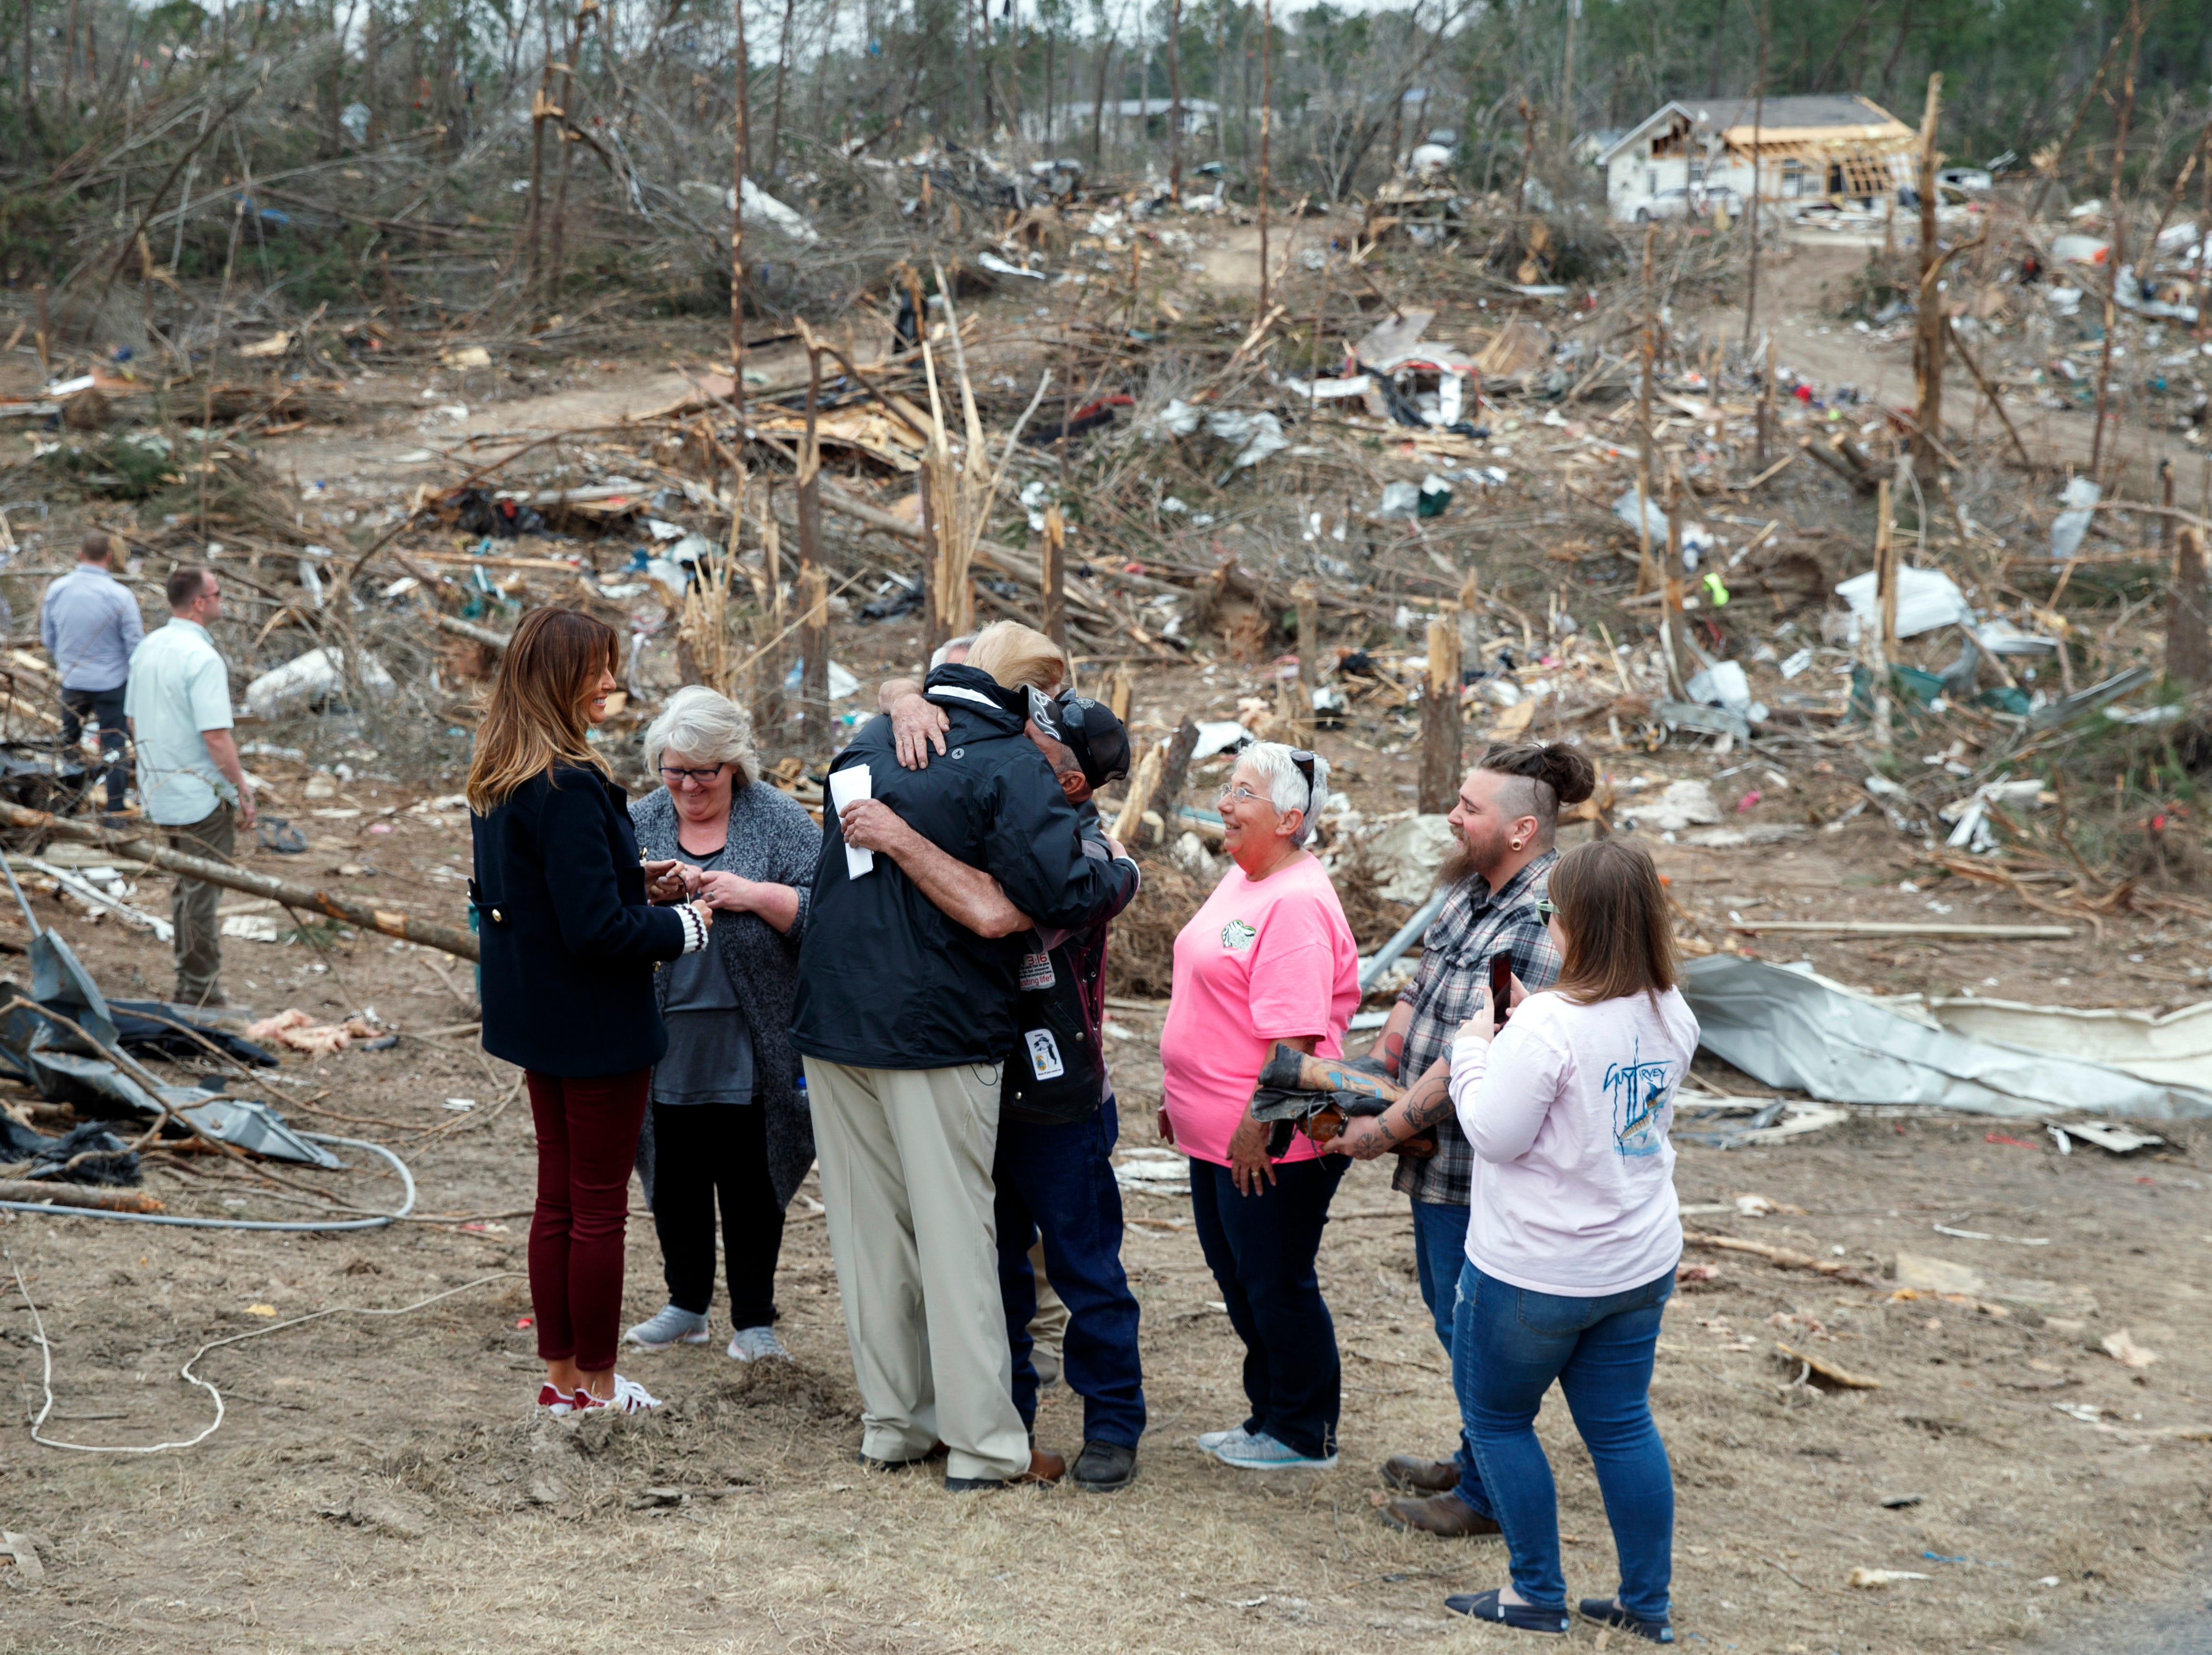 President Donald Trump hugs a resident as he and first lady Melania Trump talk with people Beauregard, Ala., Friday, March 8, 2019, as they travel to tour areas where tornados killed 23 people in Lee County, Ala.